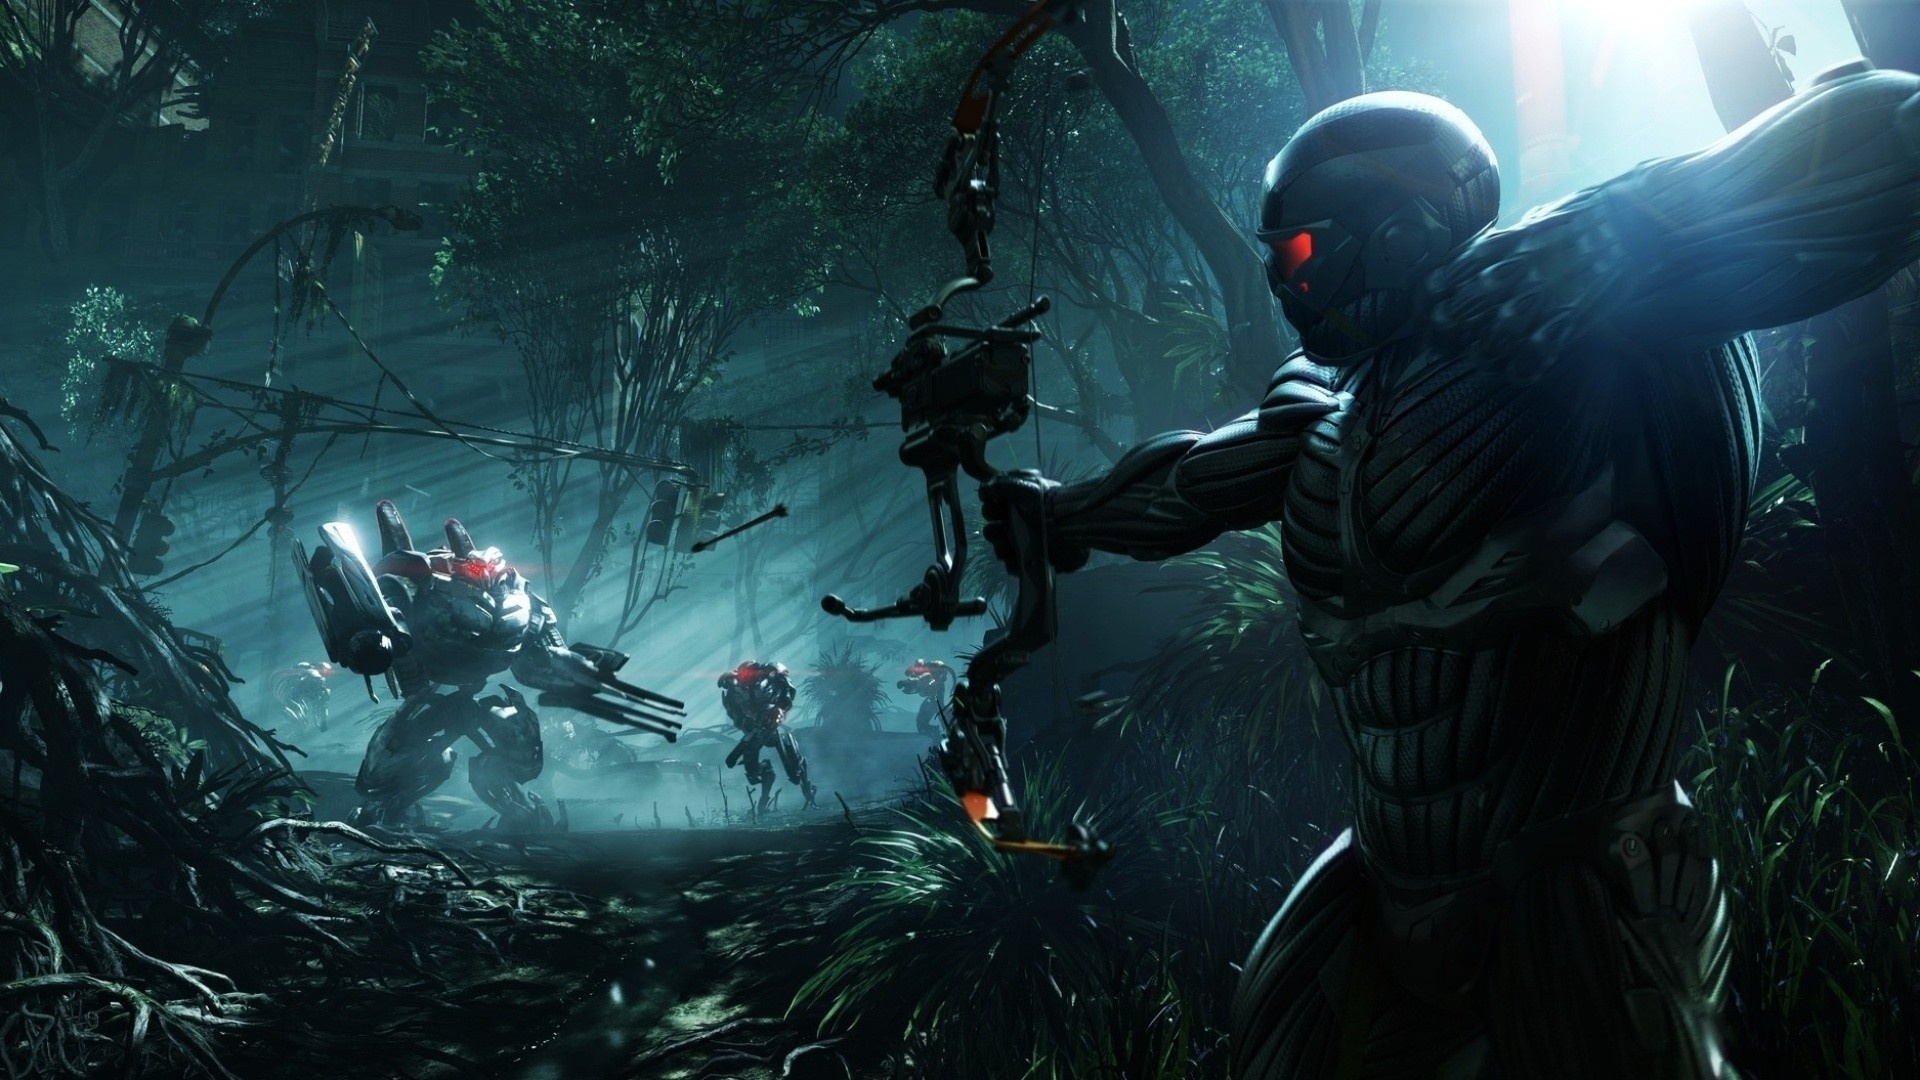 crysis 3 wallpaper 1600x900 wallpaper 808994